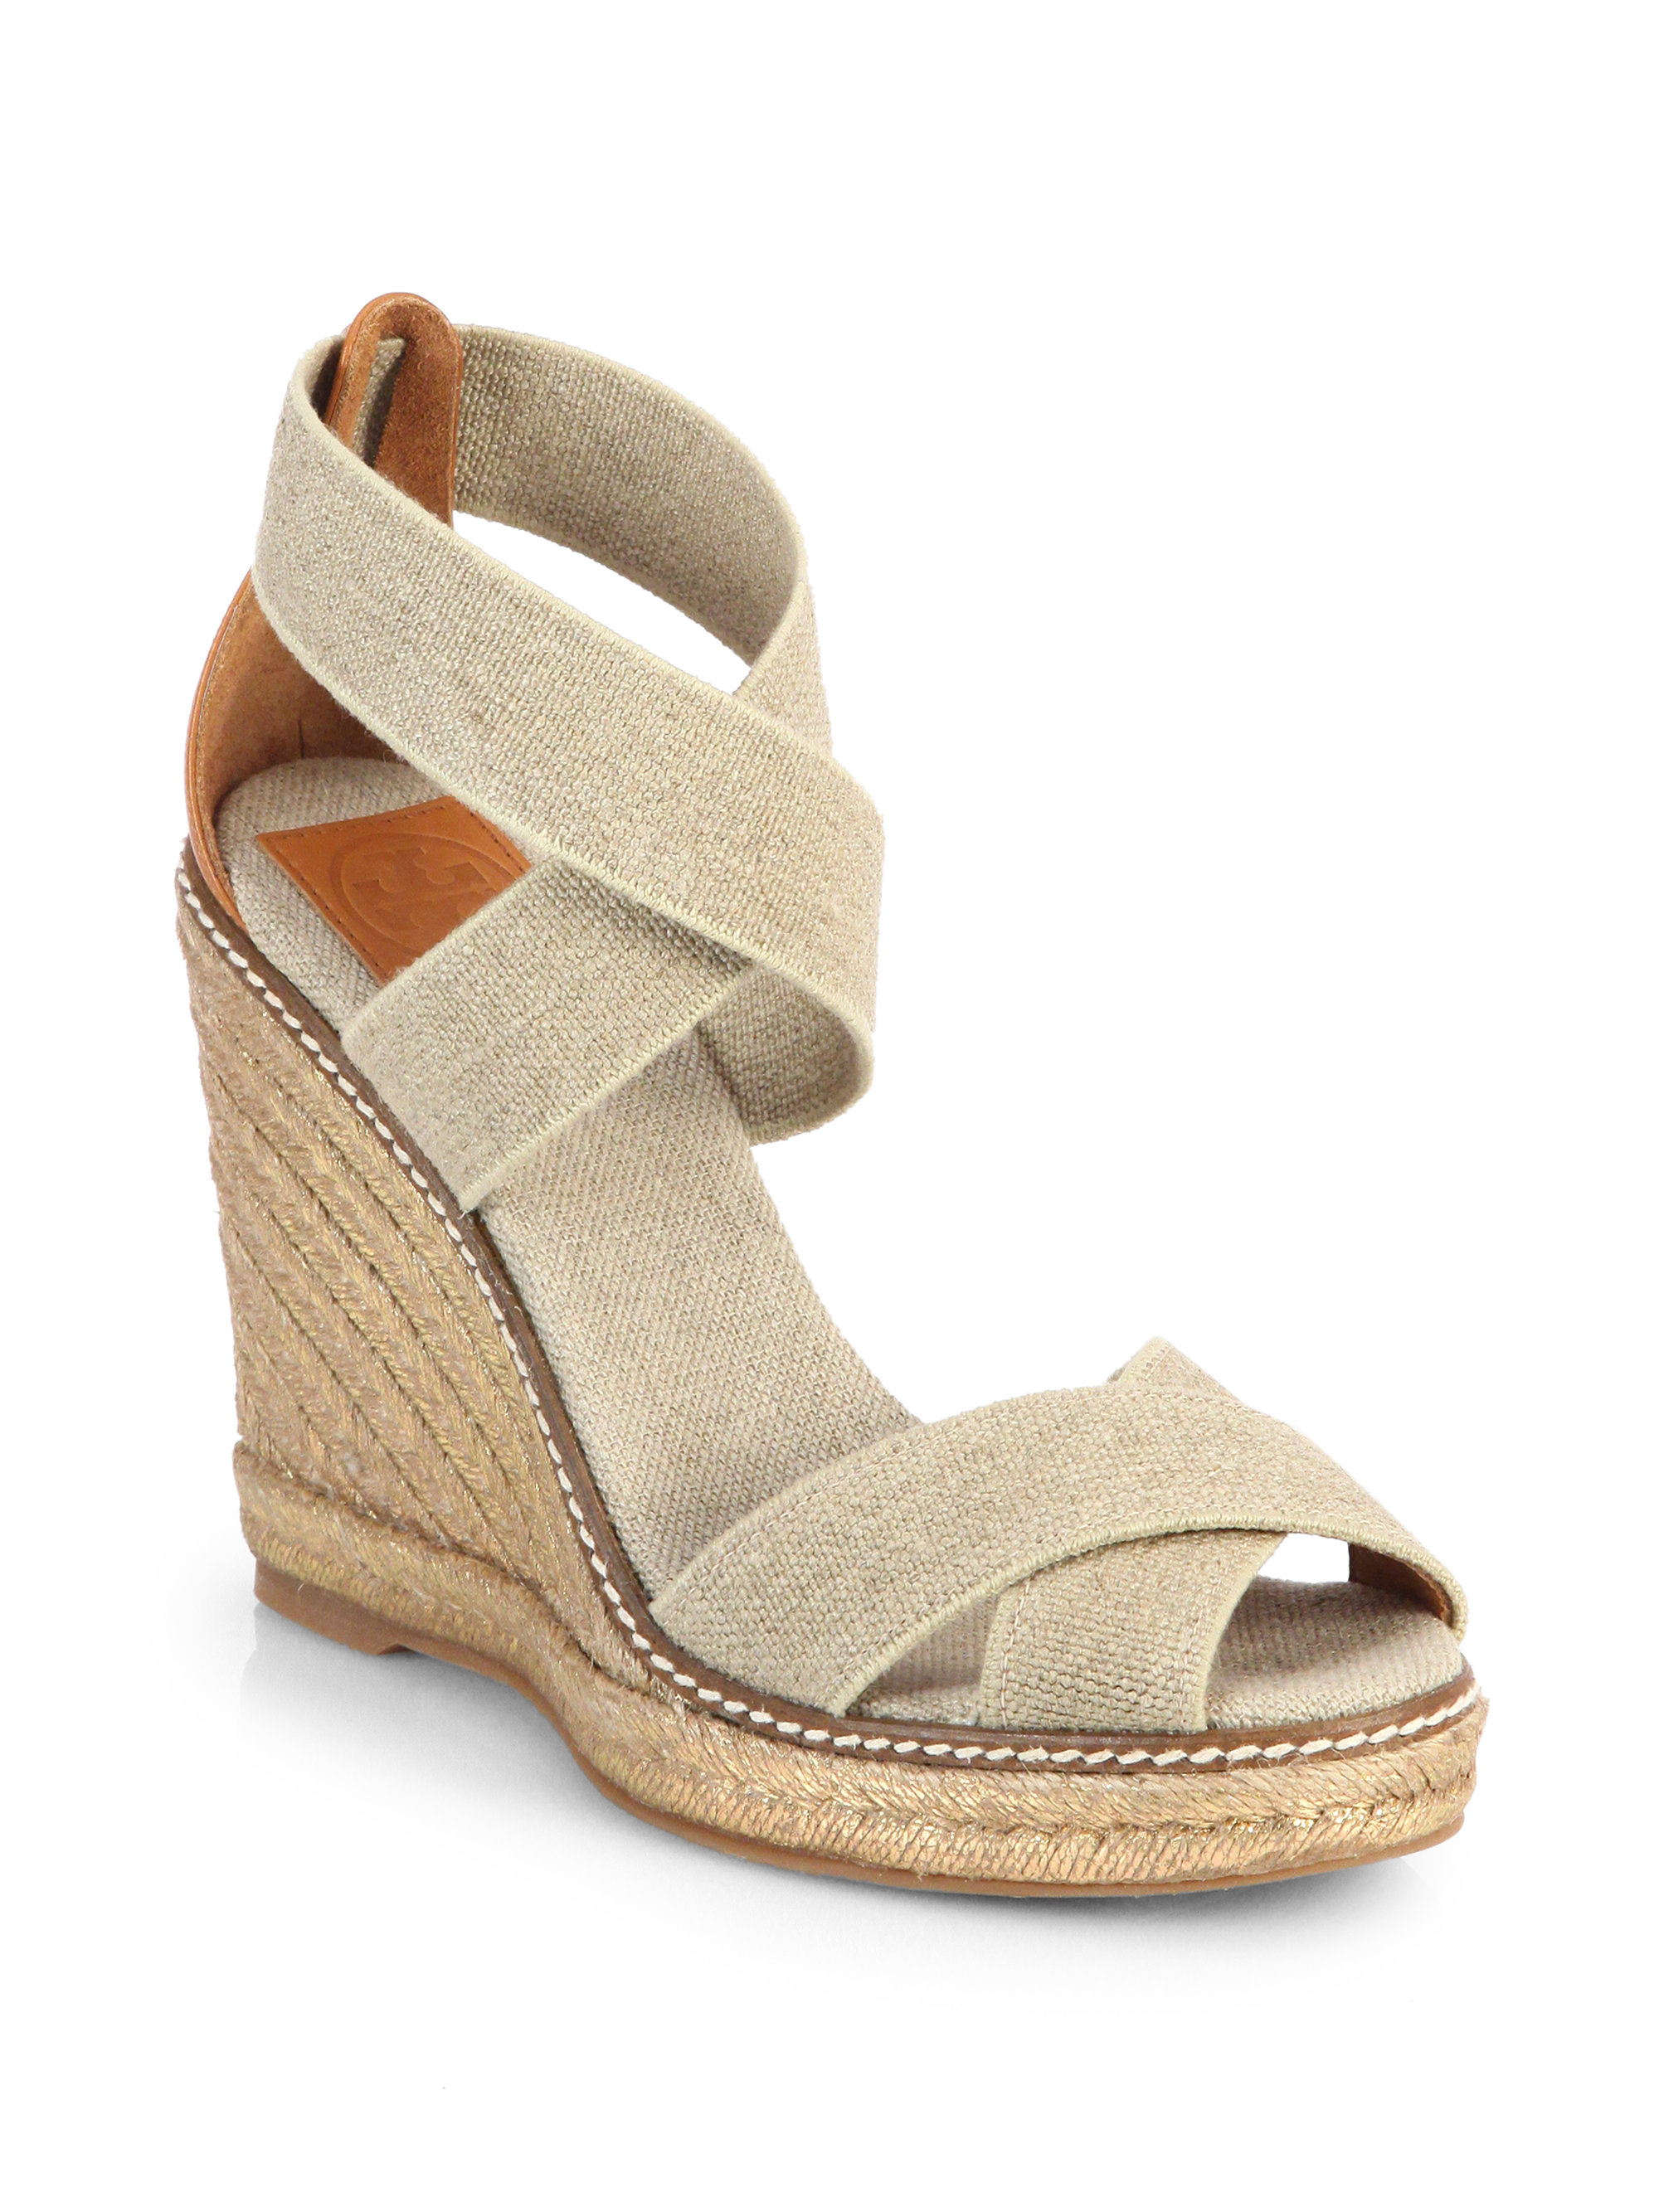 a7a46fce520 ... Lyst - Tory Burch Adonis Crisscross Espadrille Wedge Sandals in Natural  new specials 90fbb 14a6e ...